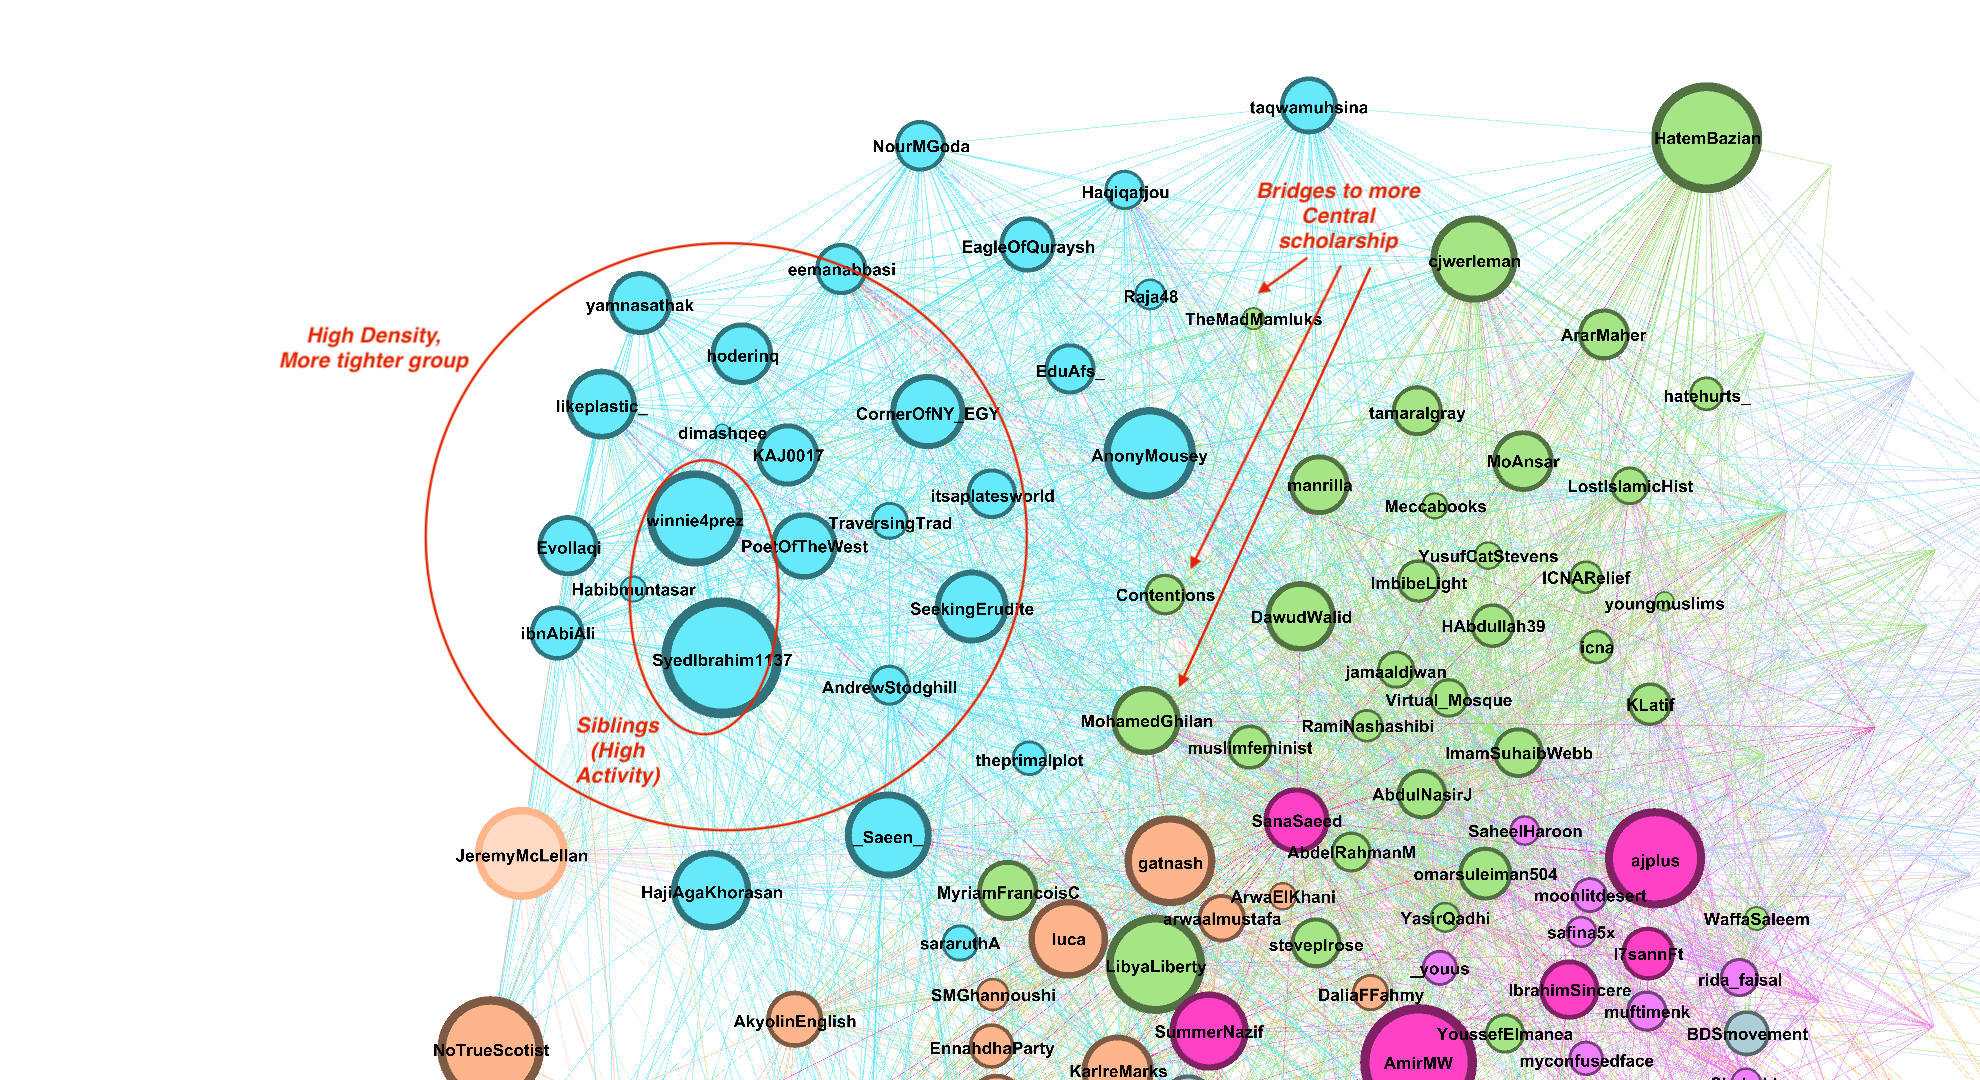 umair-akbar-1*CQeIYI5qeD27PdV47 9v A - A Graph-based approach to community detection in Twitter Networks